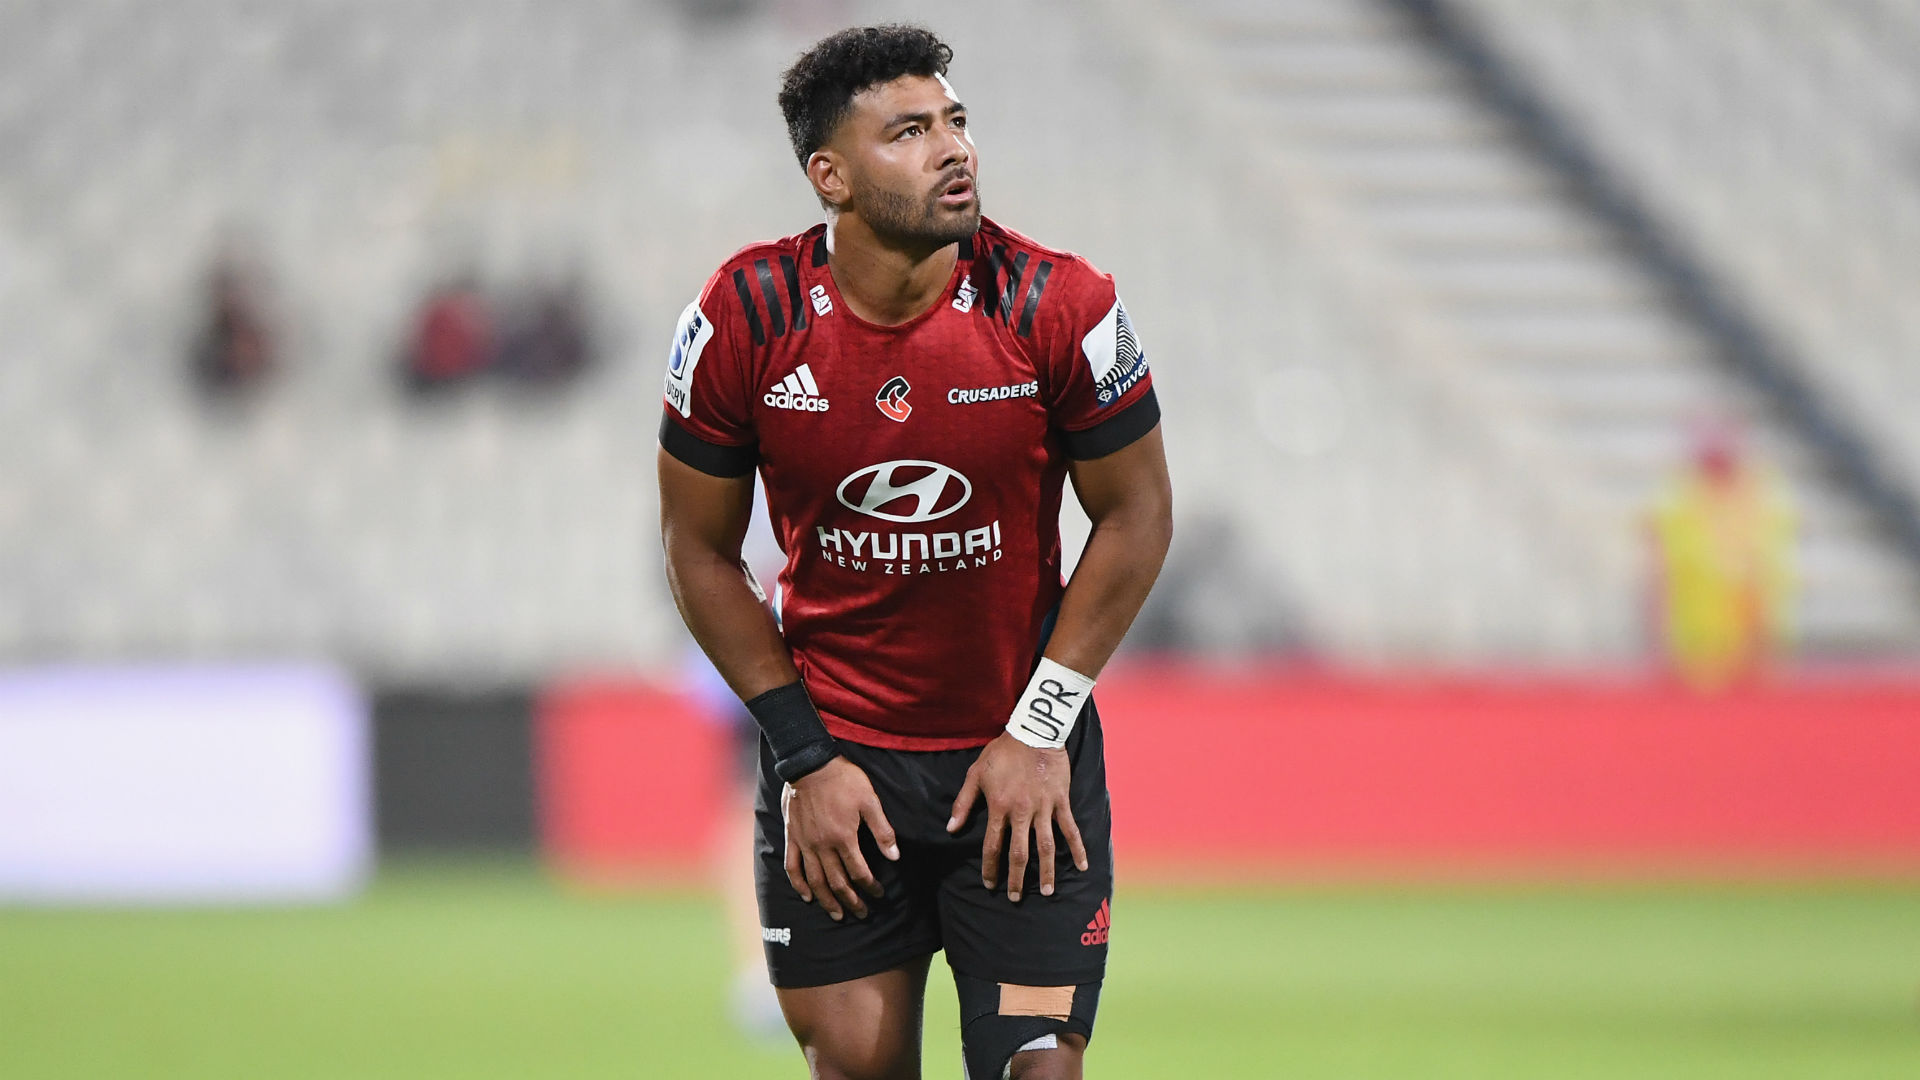 Coronavirus: Mo'unga apologises as Crusaders come under fire for park training